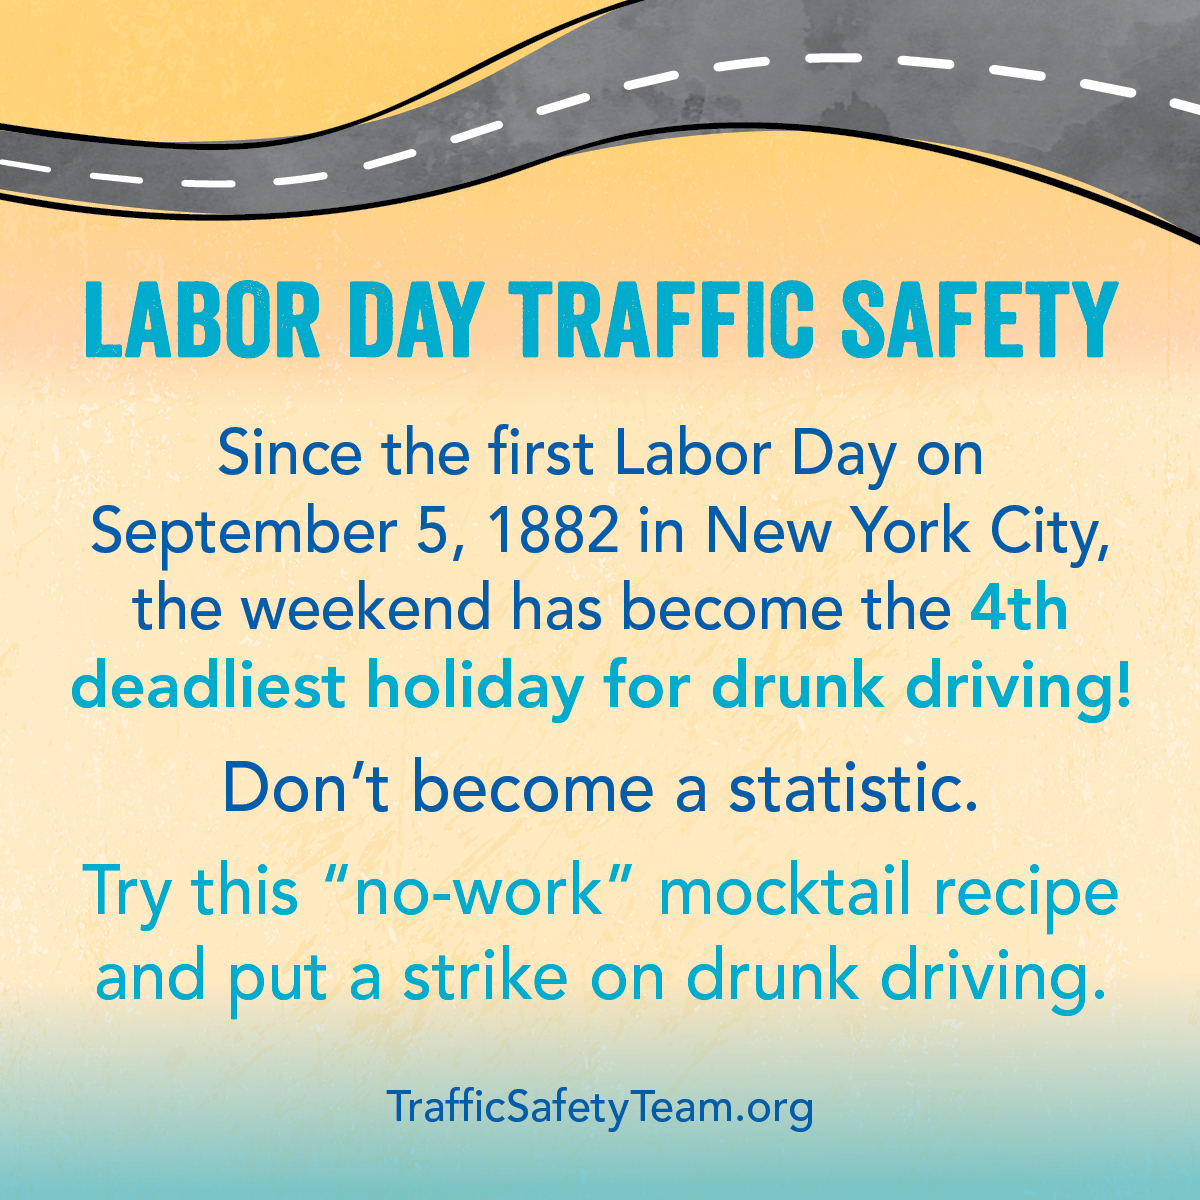 Labor Day Traffic Safety